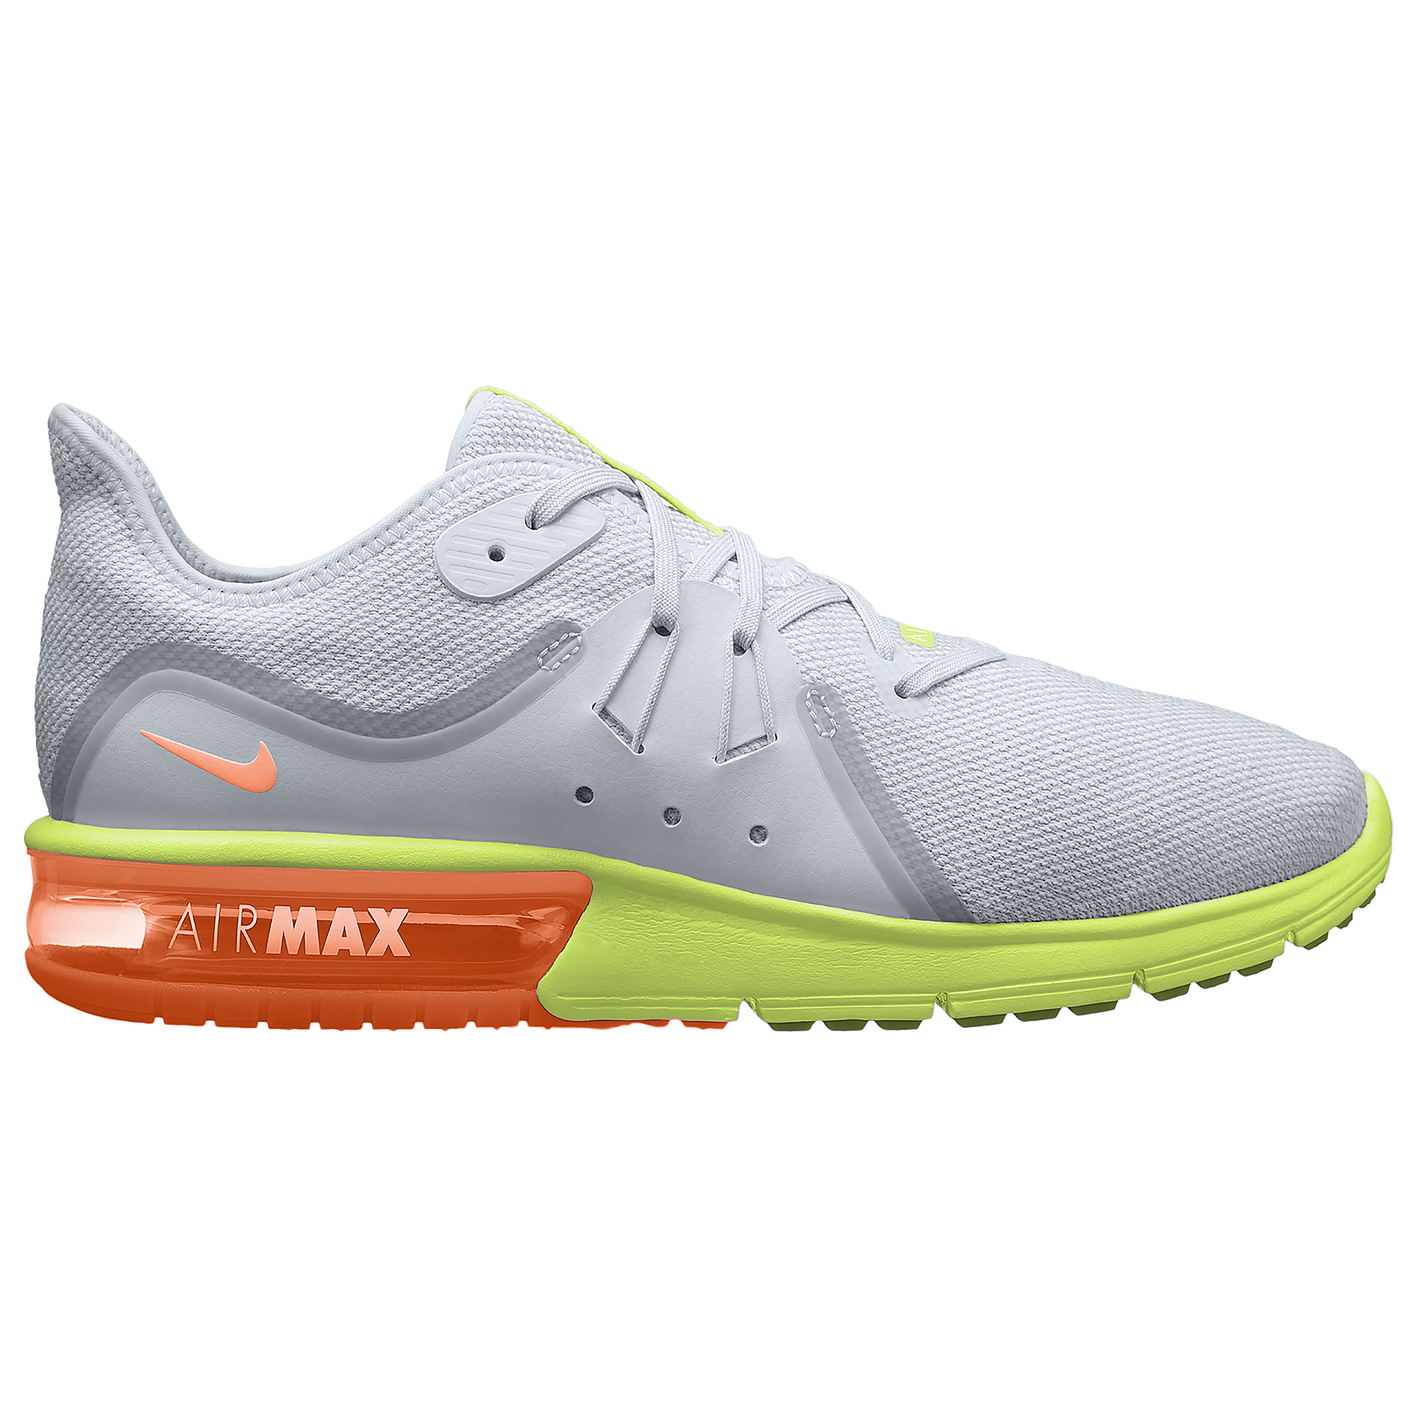 1828f8549fc Nike Air Max Sequent 3 - Men s - Running - Shoes - Grey Orange Green